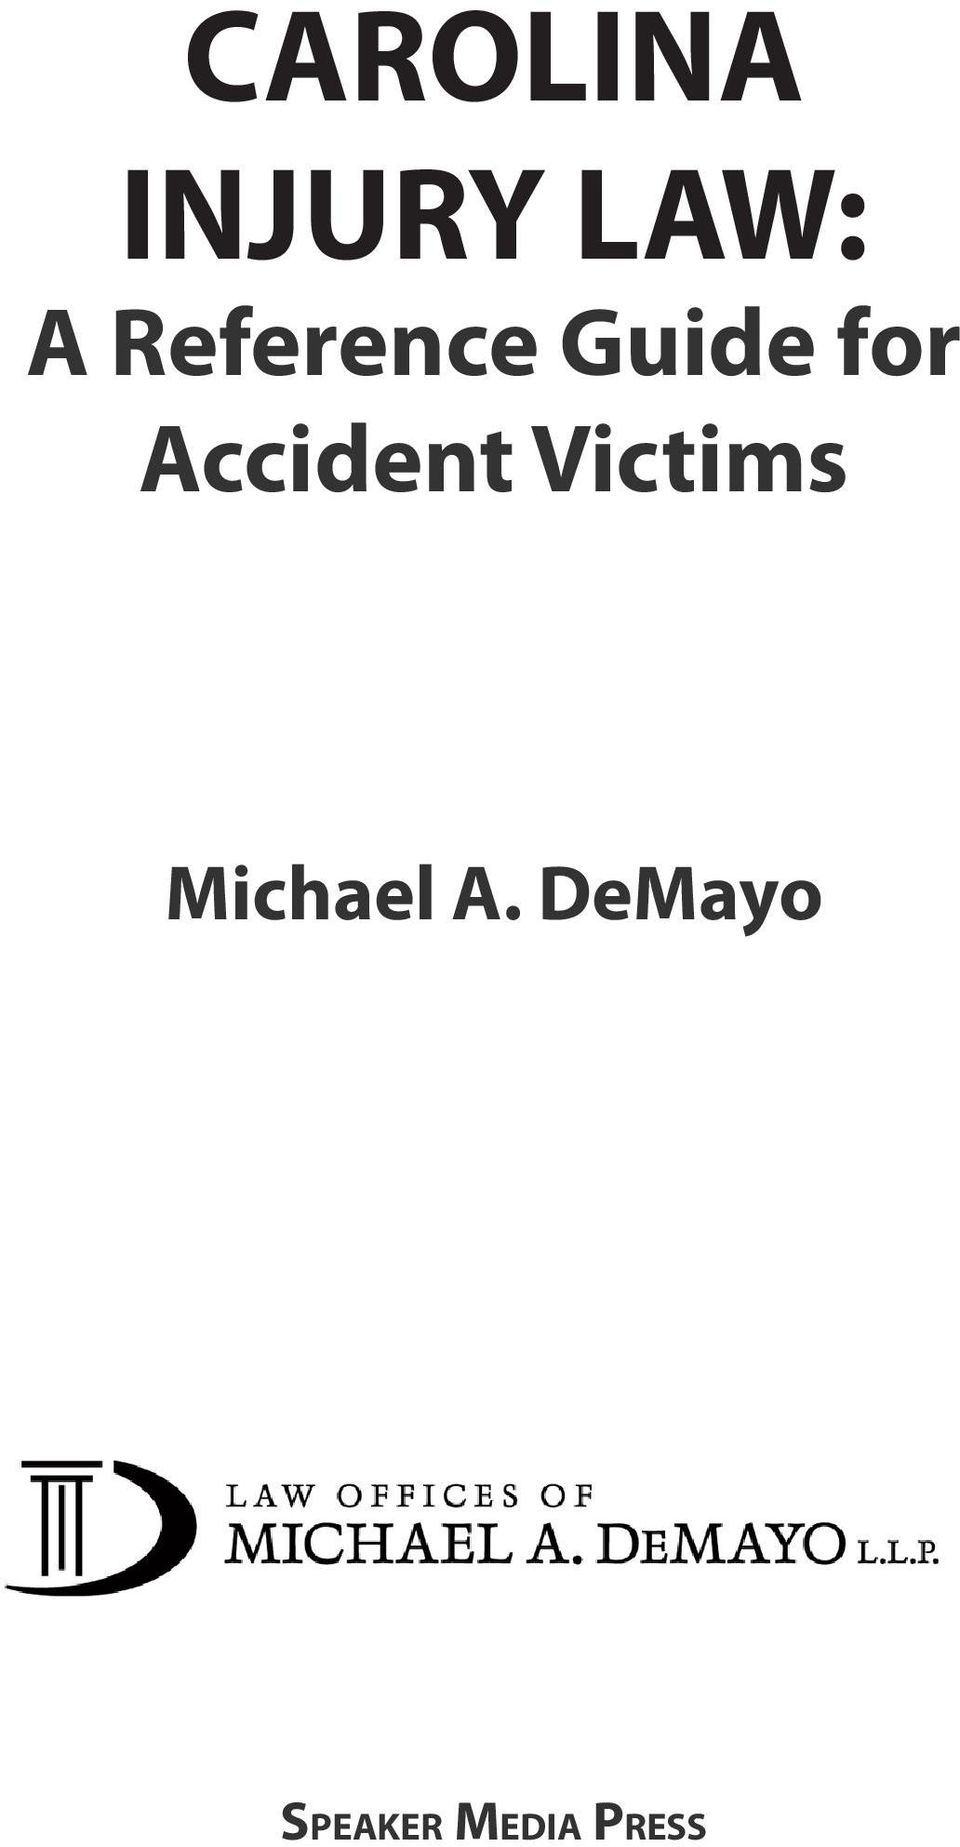 Accident Victims Michael